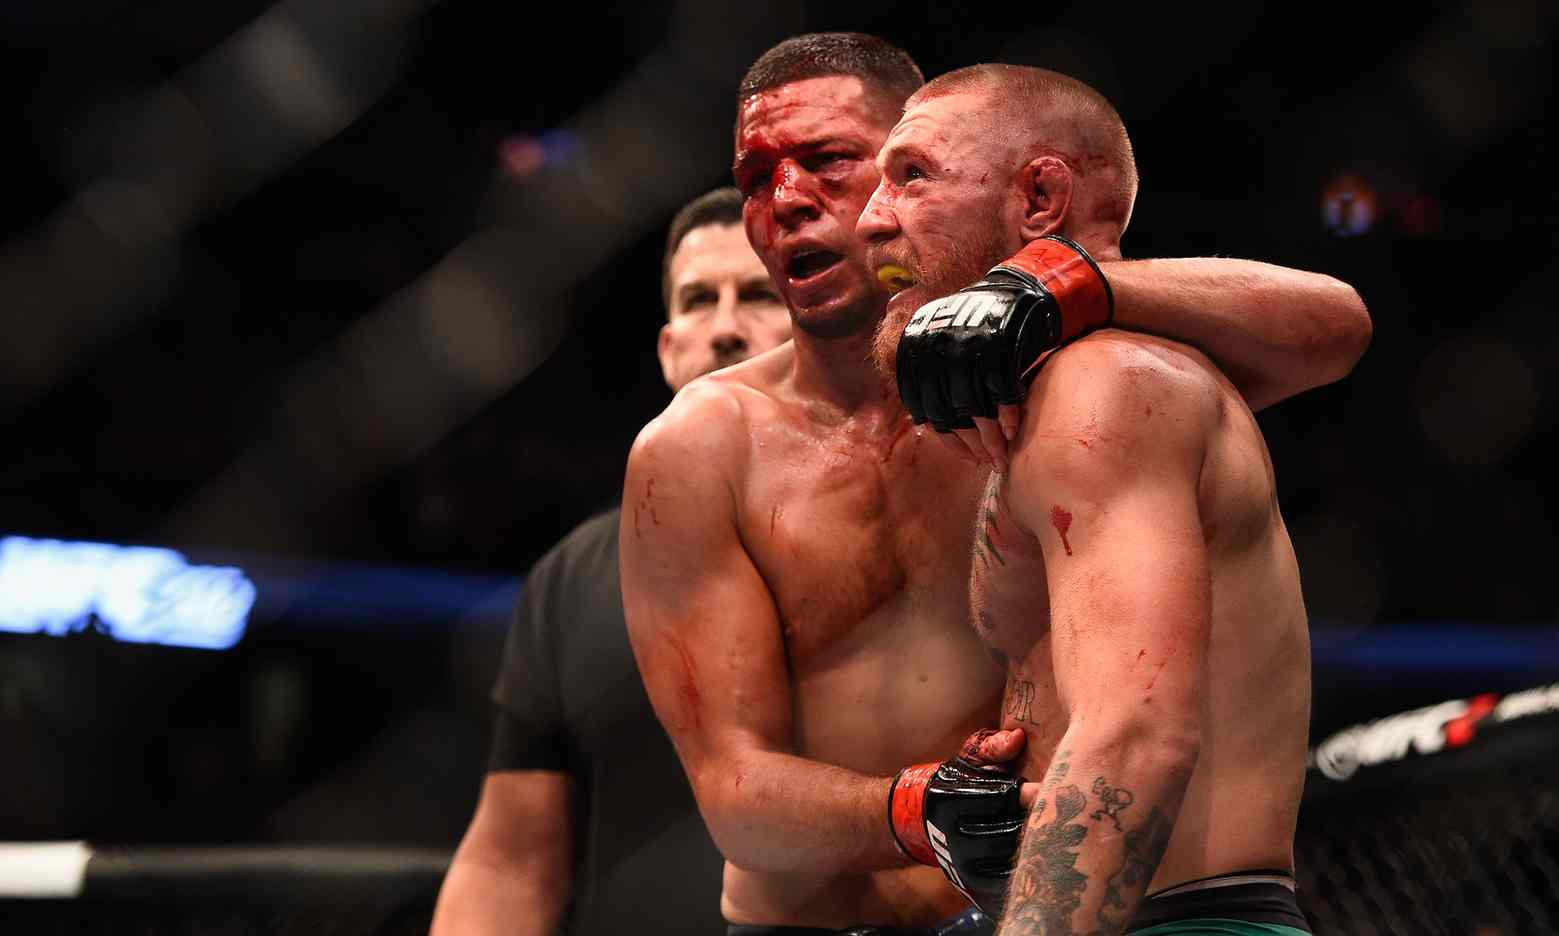 UFC 202 - Conor McGregor vs. Nate Diaz